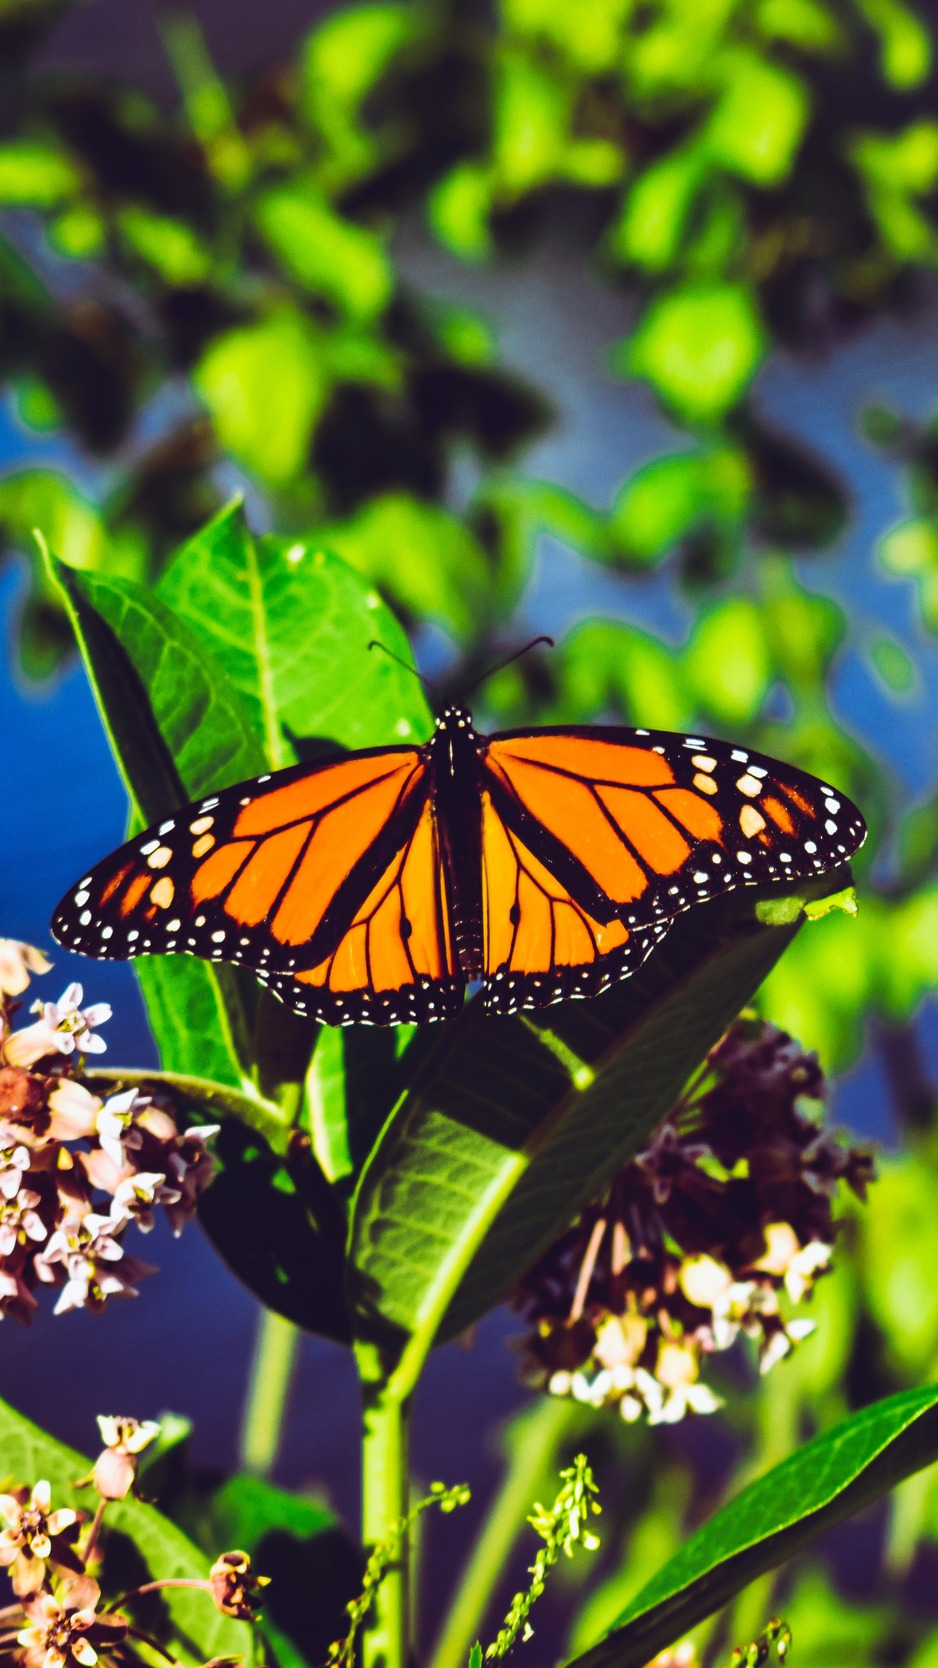 Download wallpaper 938x1668 monarch butterfly butterfly bright 938x1668